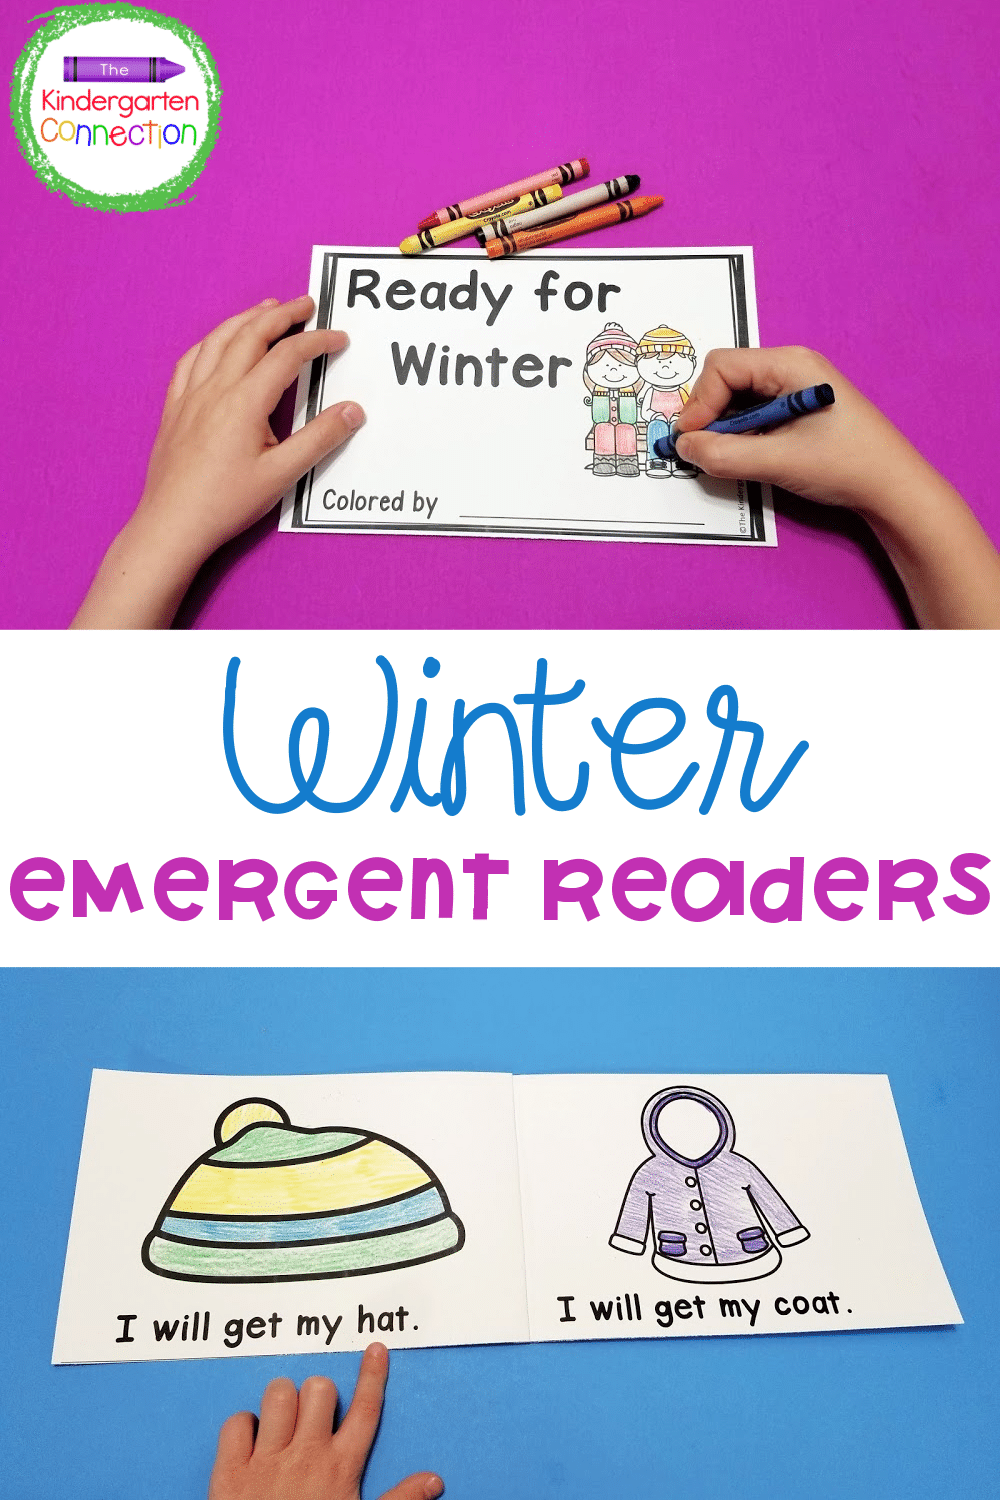 These printable winter emergent readers are great for early readers to use as guided reading books or take home books in Kindergarten!